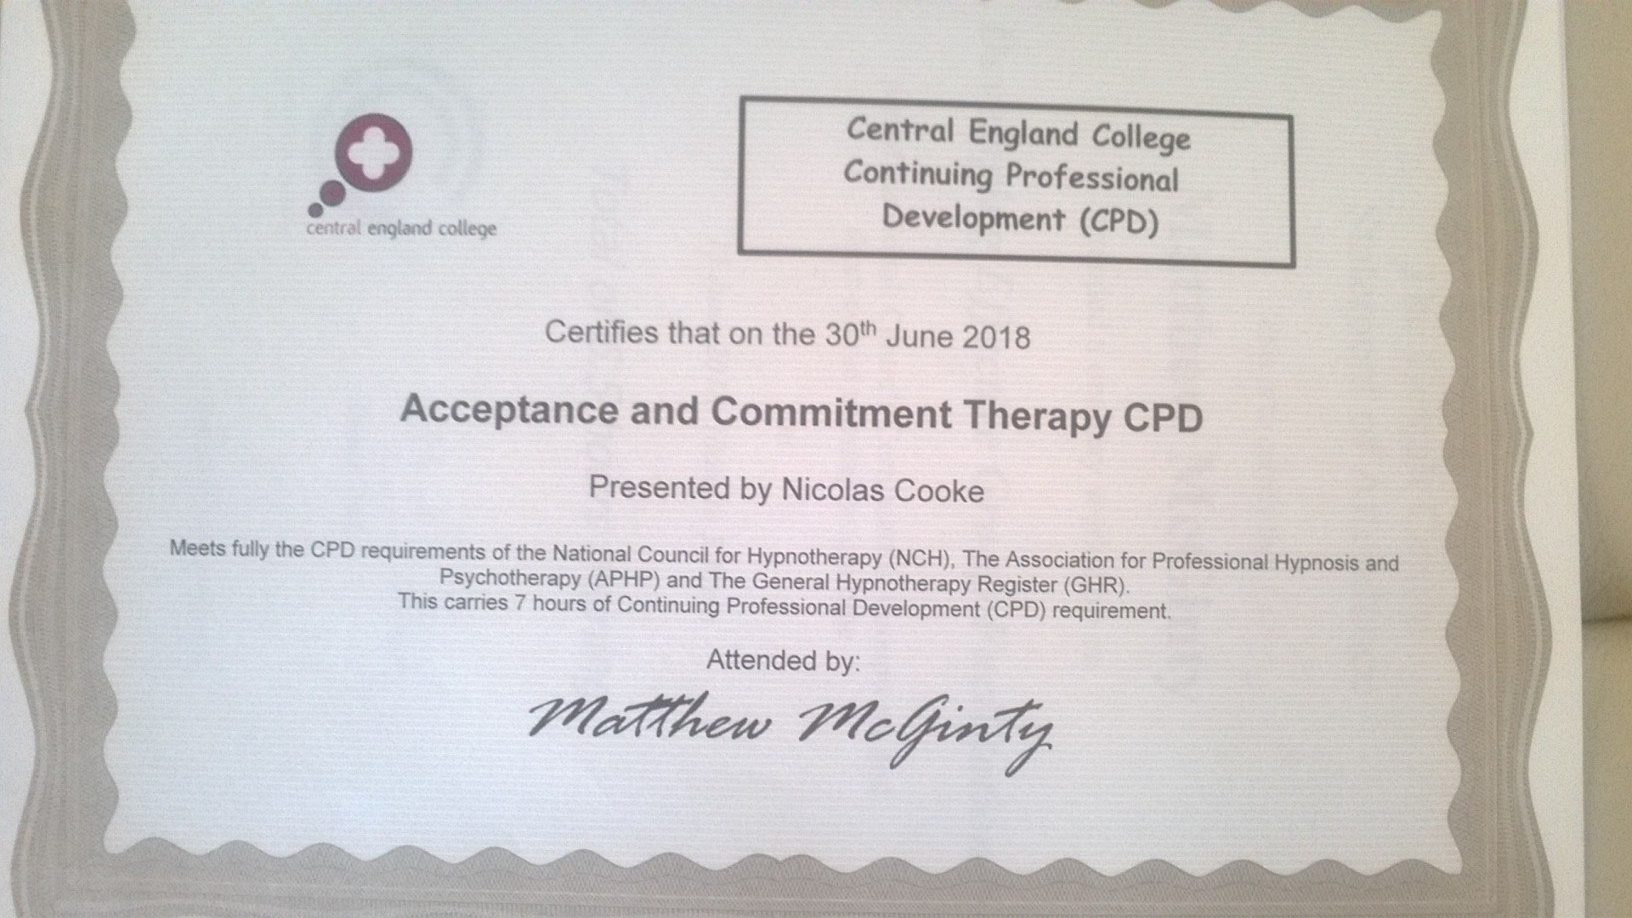 Acceptance and Commitment Therapy Certificate